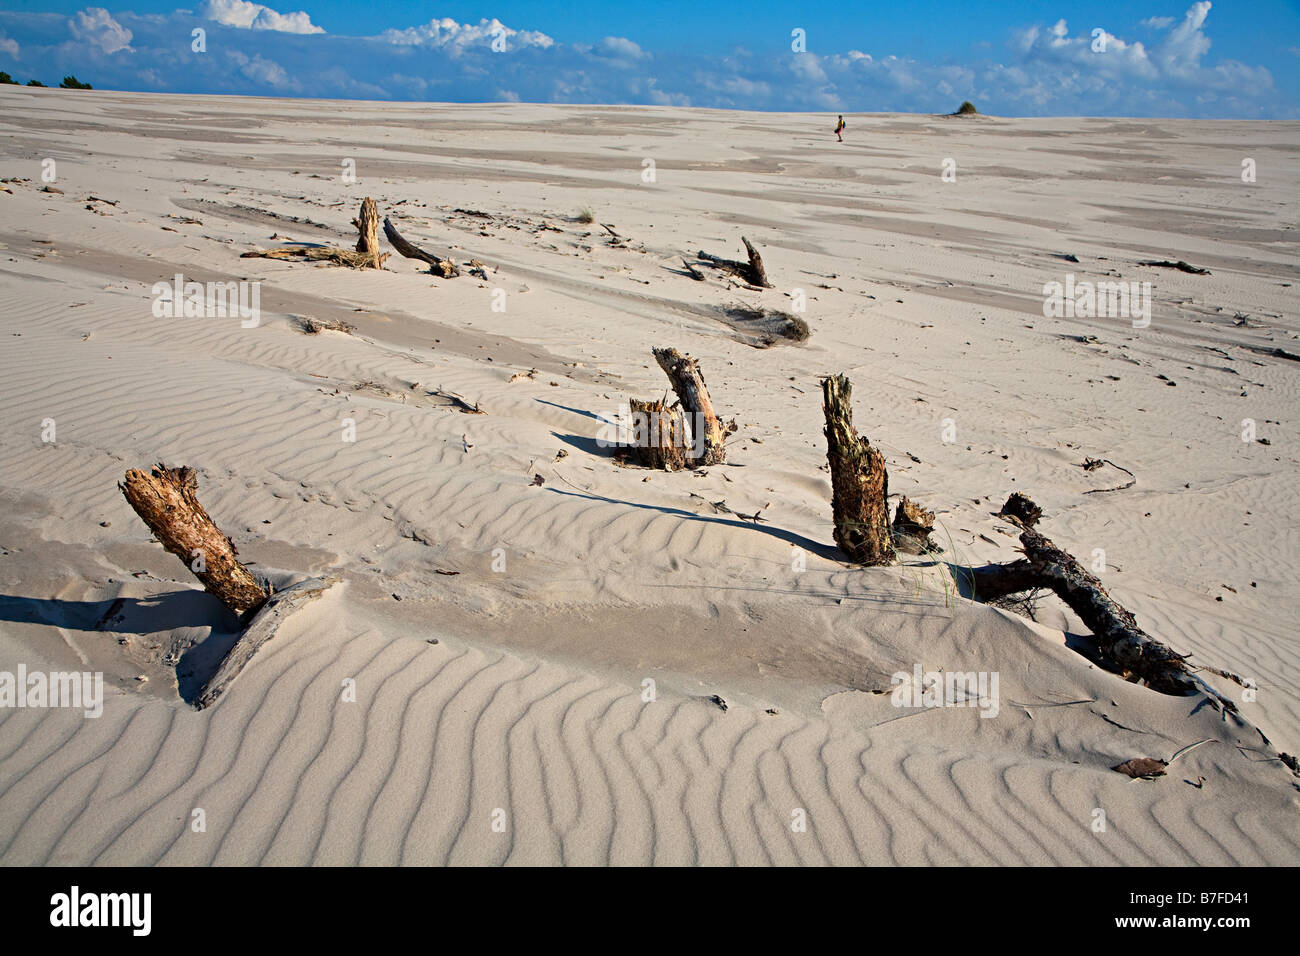 Dead tree stumps eroded from sand dunes with hiker in distance Wydma Czolpinska dune Slowinski national park Poland - Stock Image